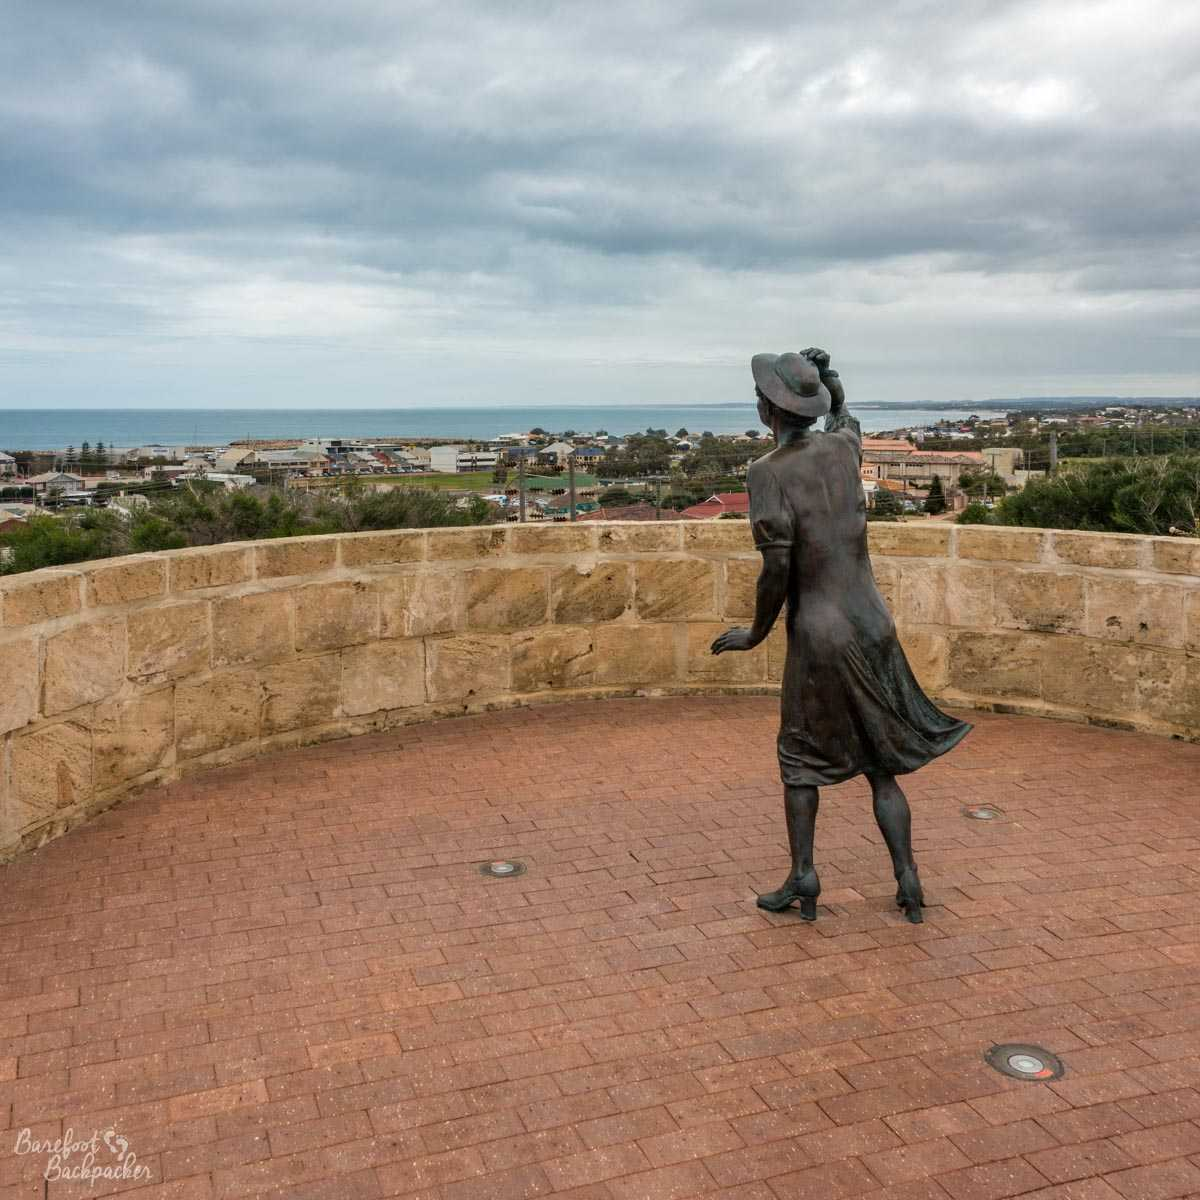 HMAS Sydney Memorial – the statue of a woman gazing longingly out to sea.